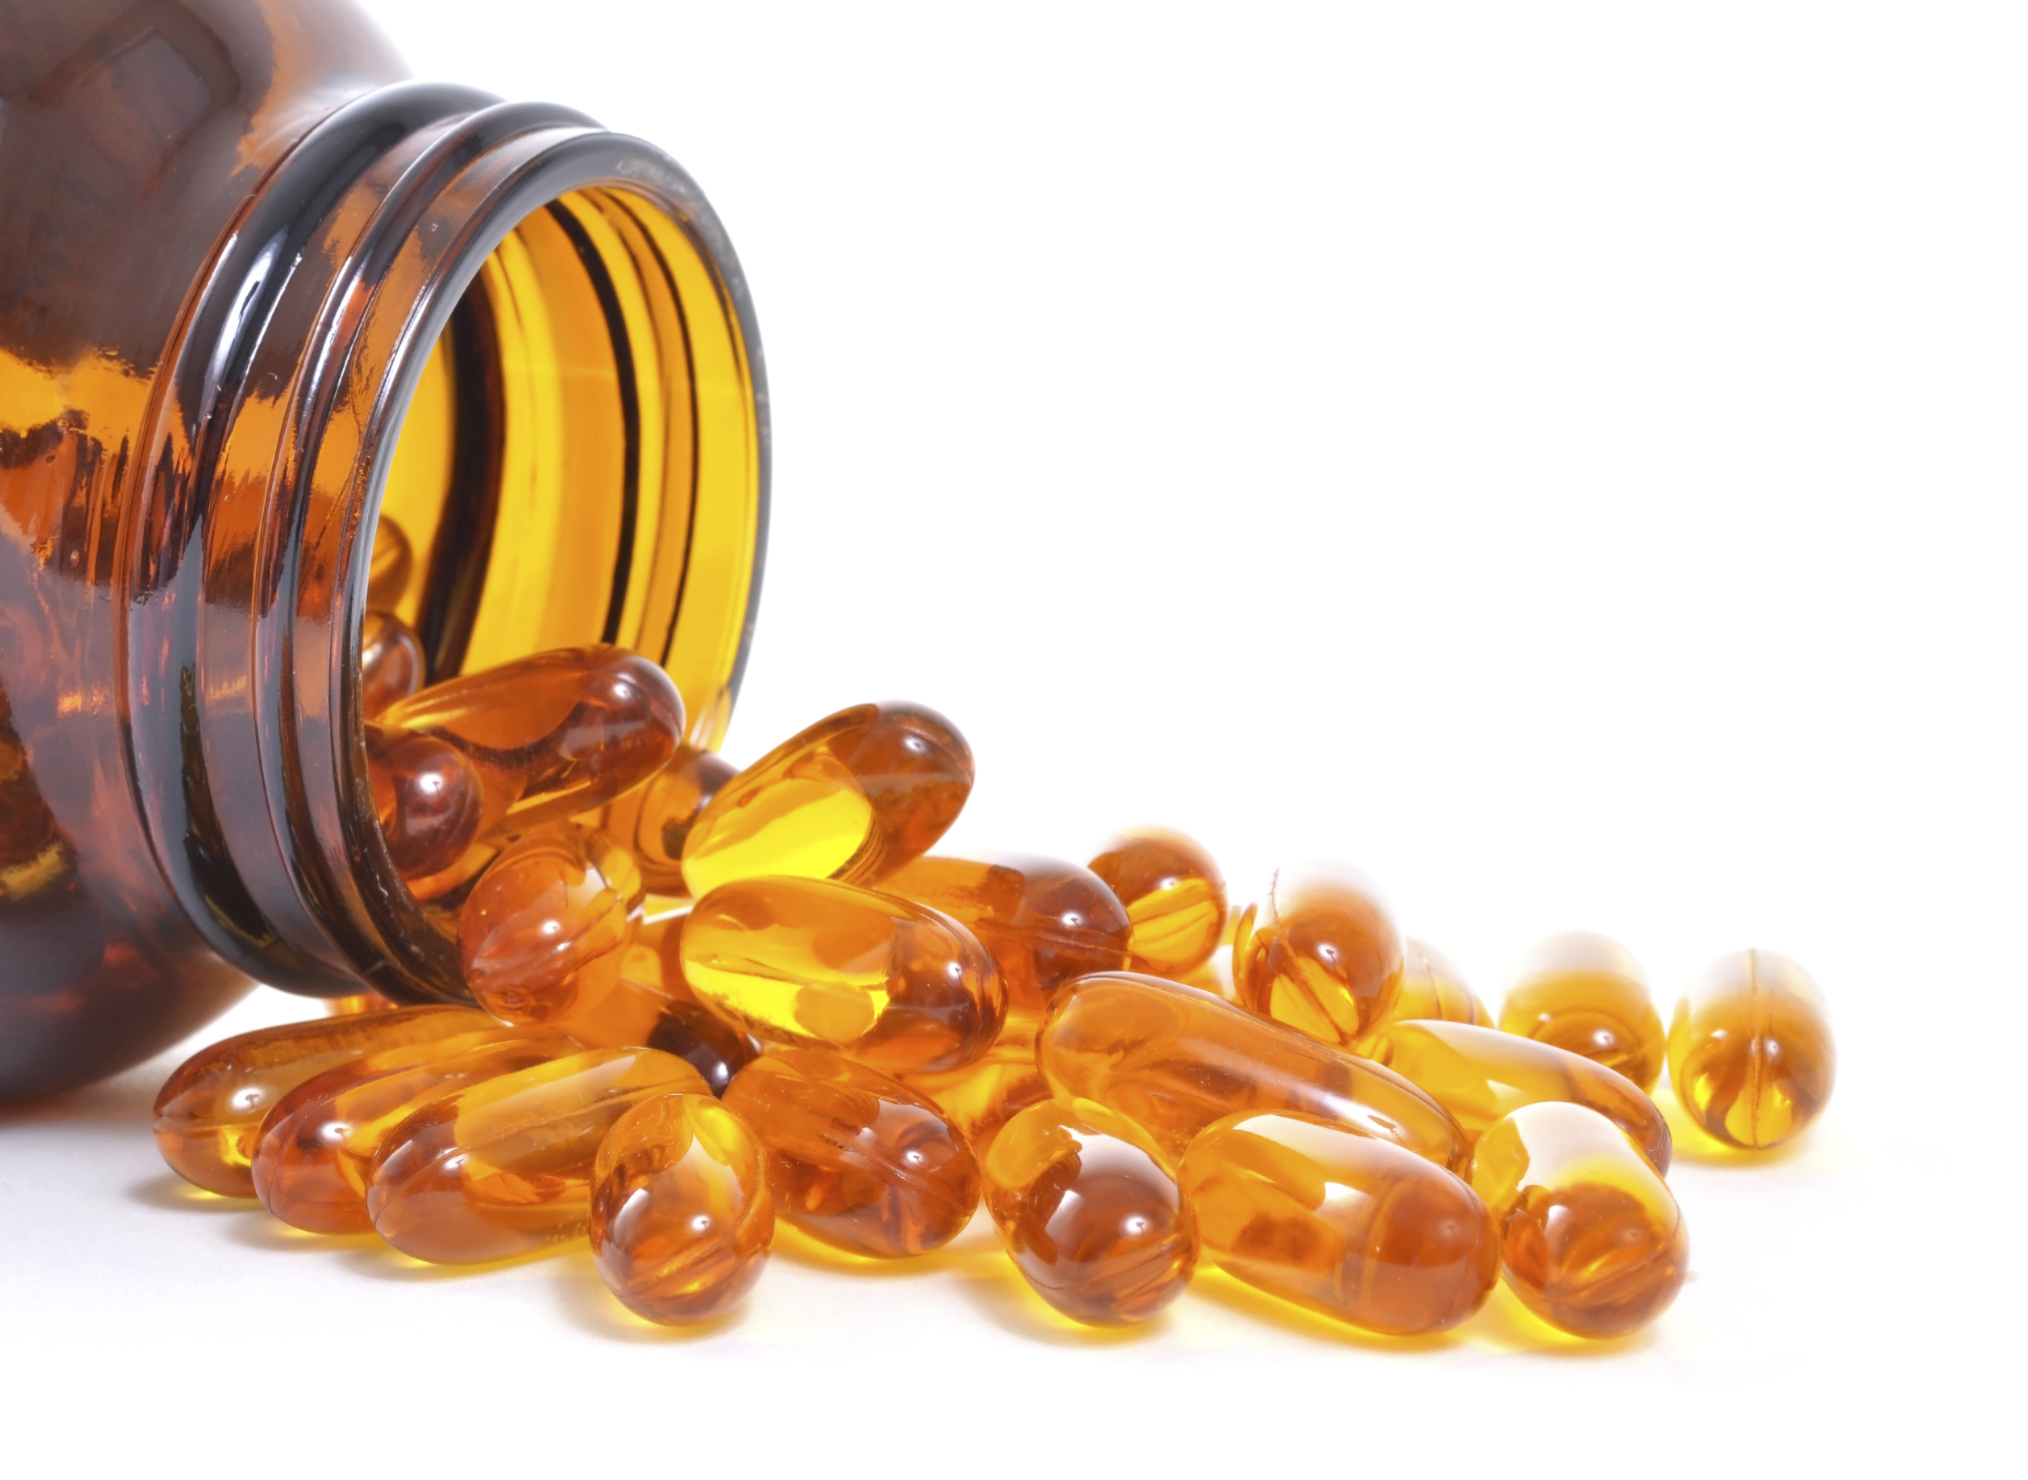 health supplements registration in Dubai